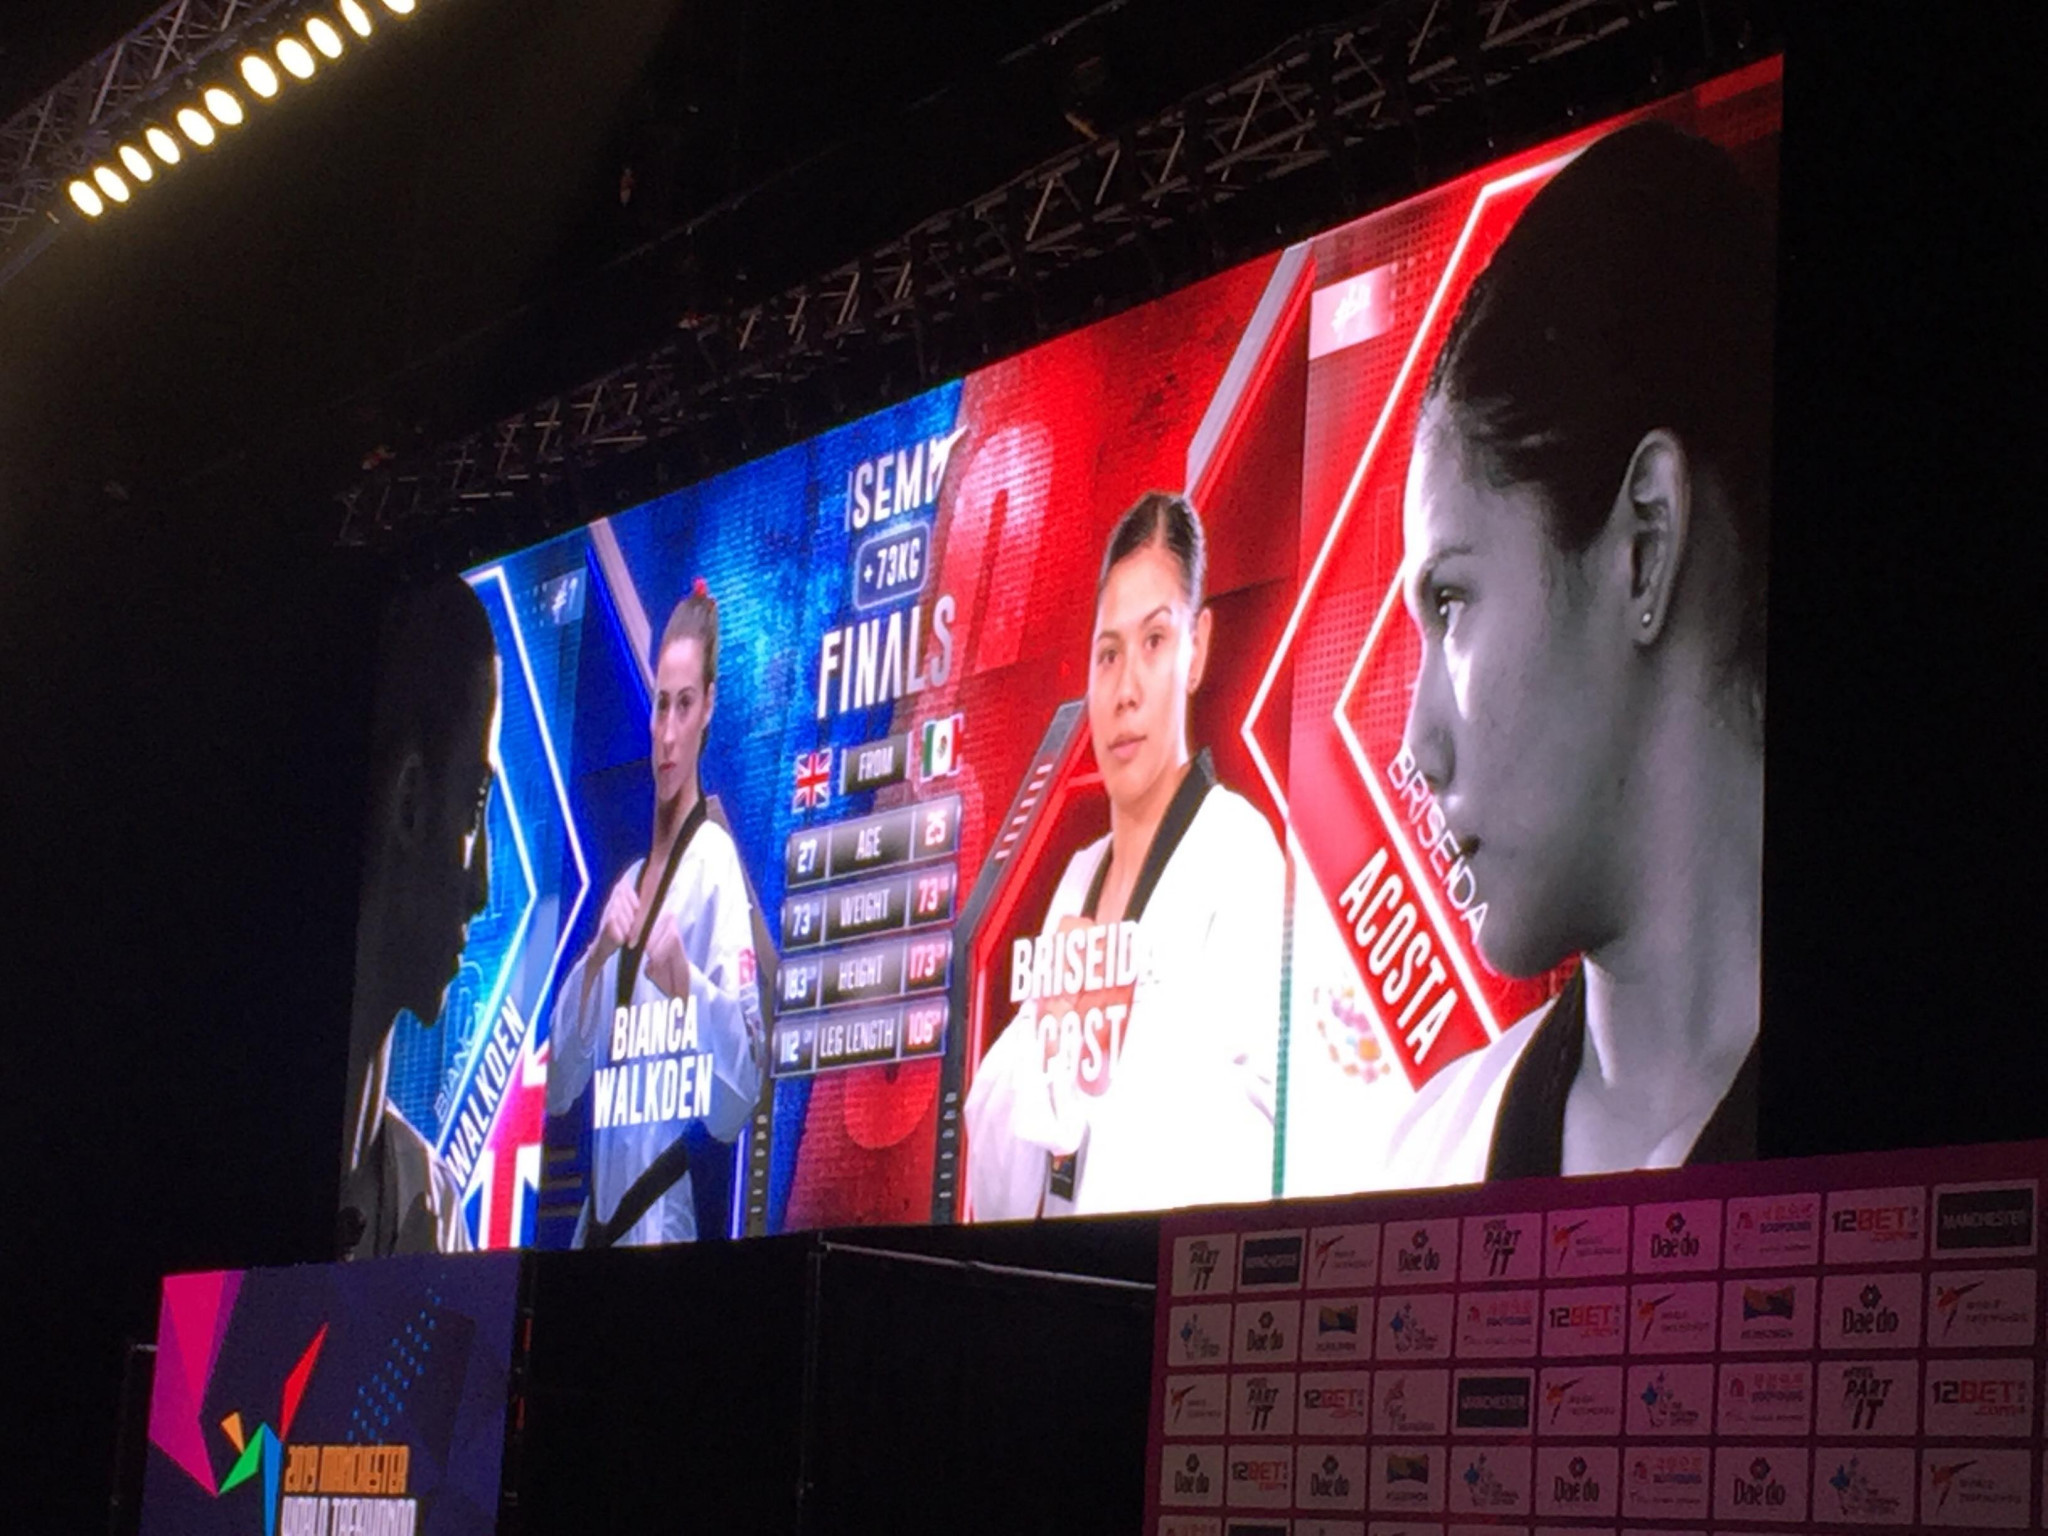 The atmosphere was also intensified by the dramatic build-up to semi-finals and finals ©ITG